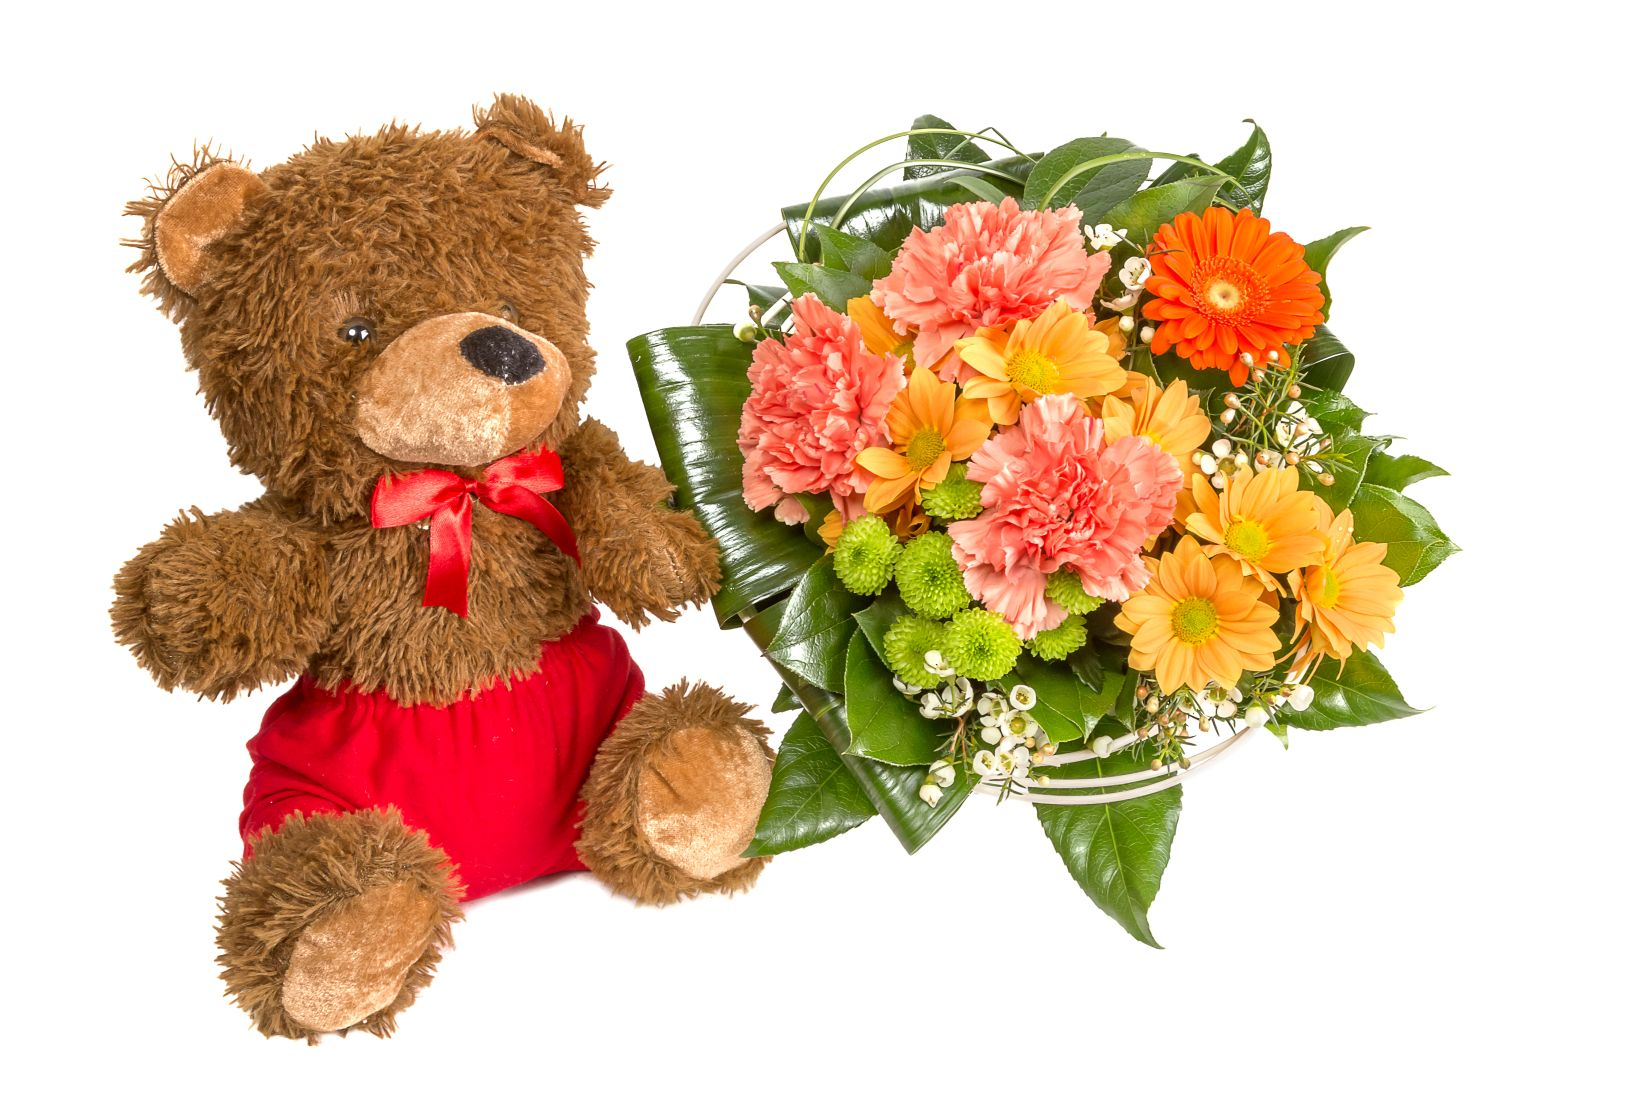 colorful-bouquet-with-a-teddy-bear